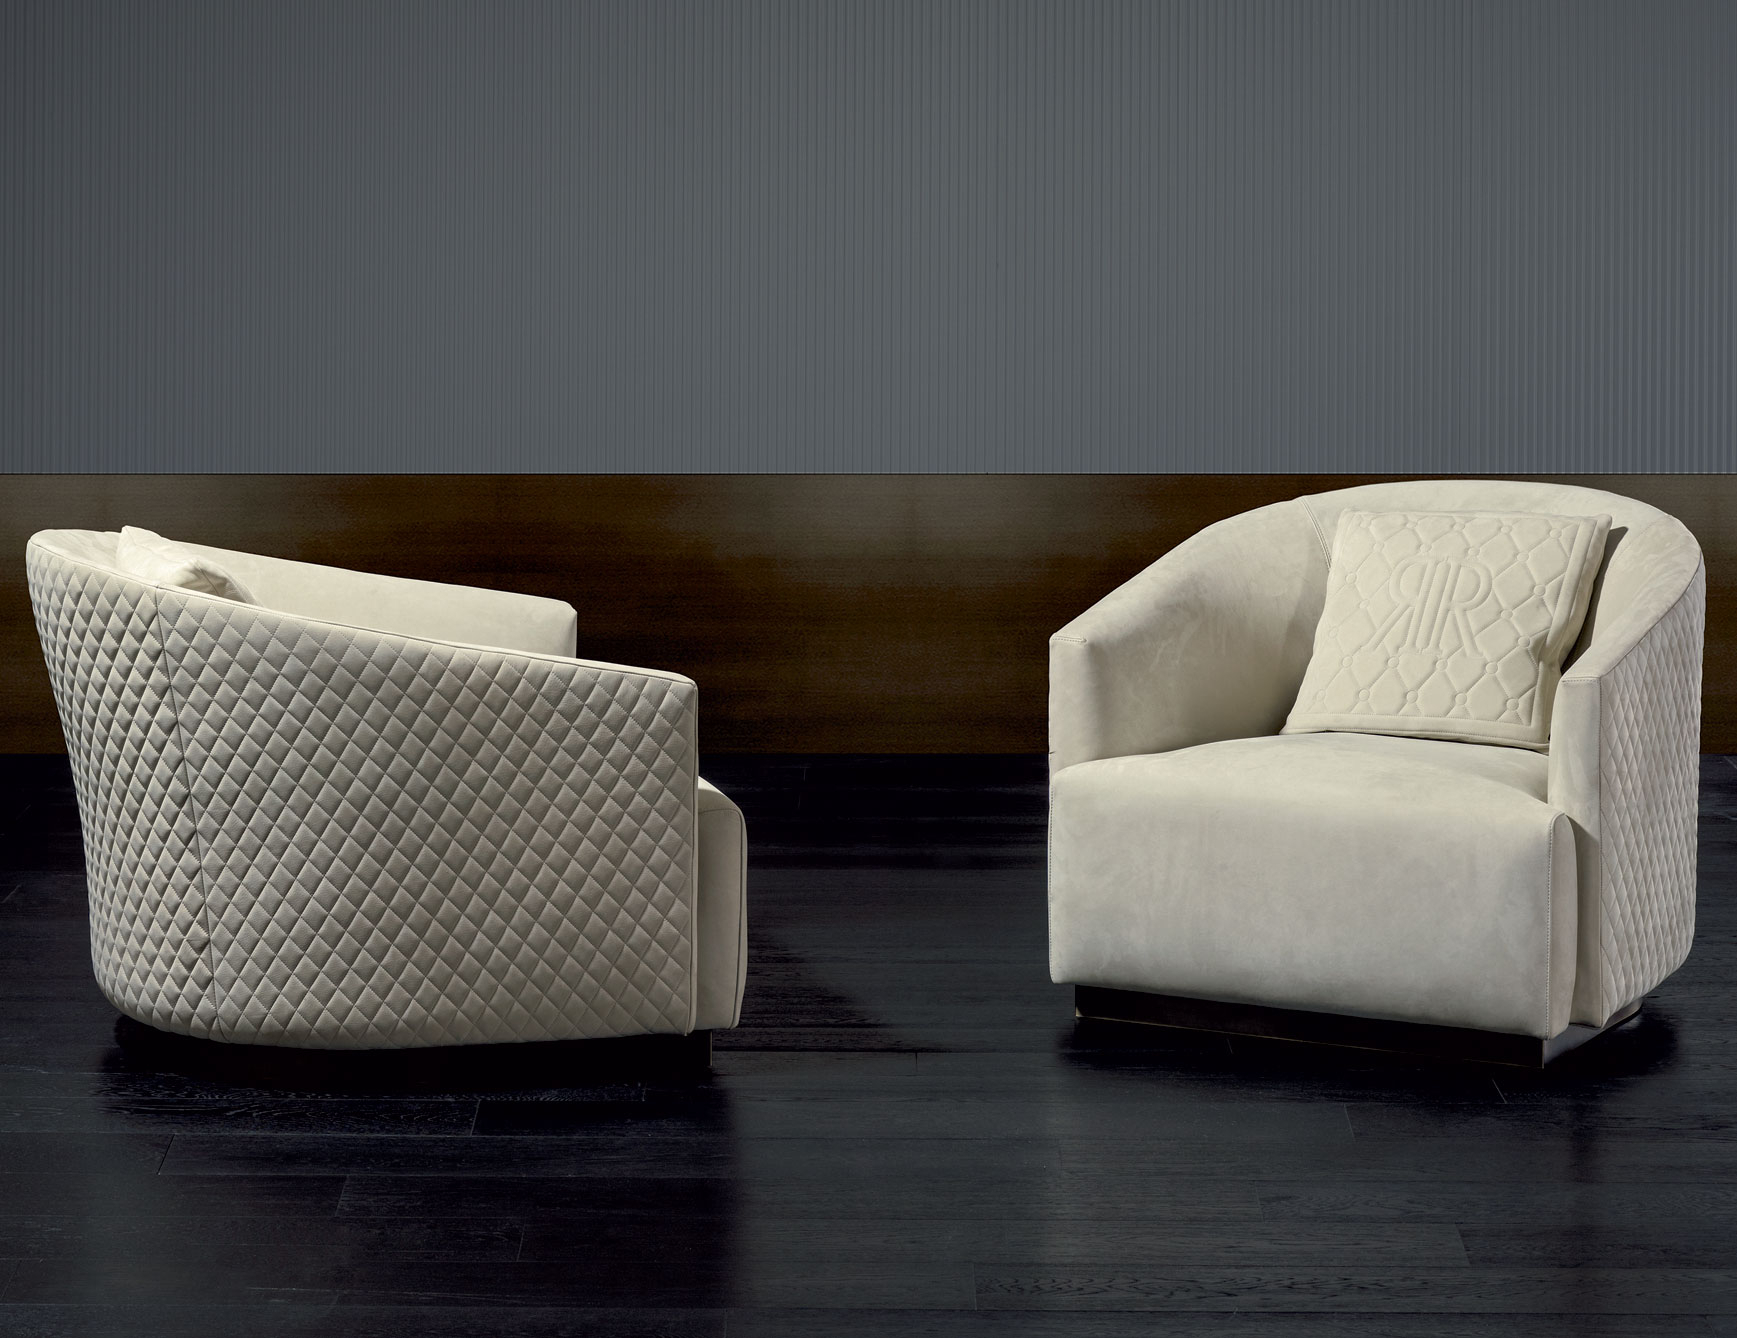 Nella Vetrina Rugiano Opera 6090 Arm Chair In Beige Suede Inside Sofa Arm Chairs (View 12 of 15)